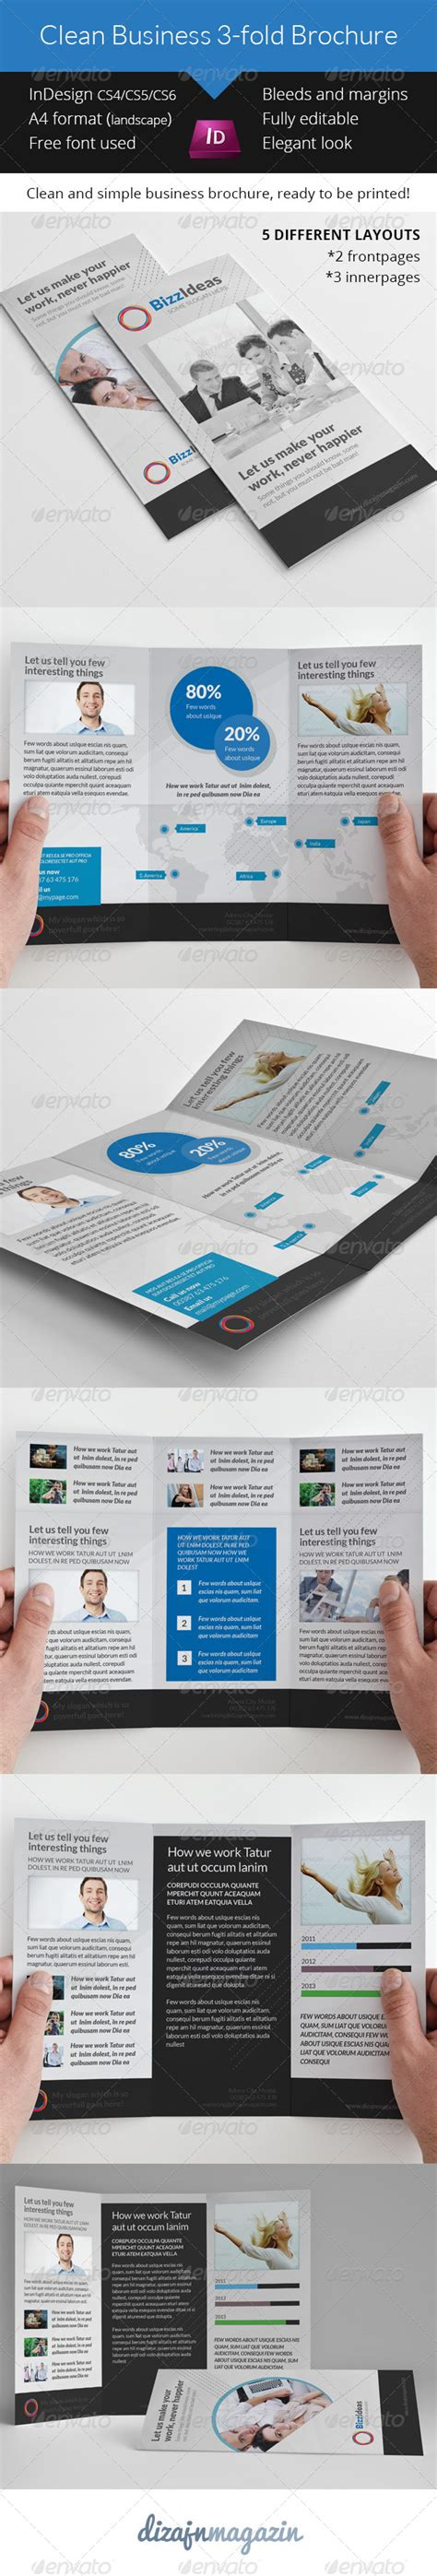 3 fold brochure template indesign clean business 3 fold brochures indesign template